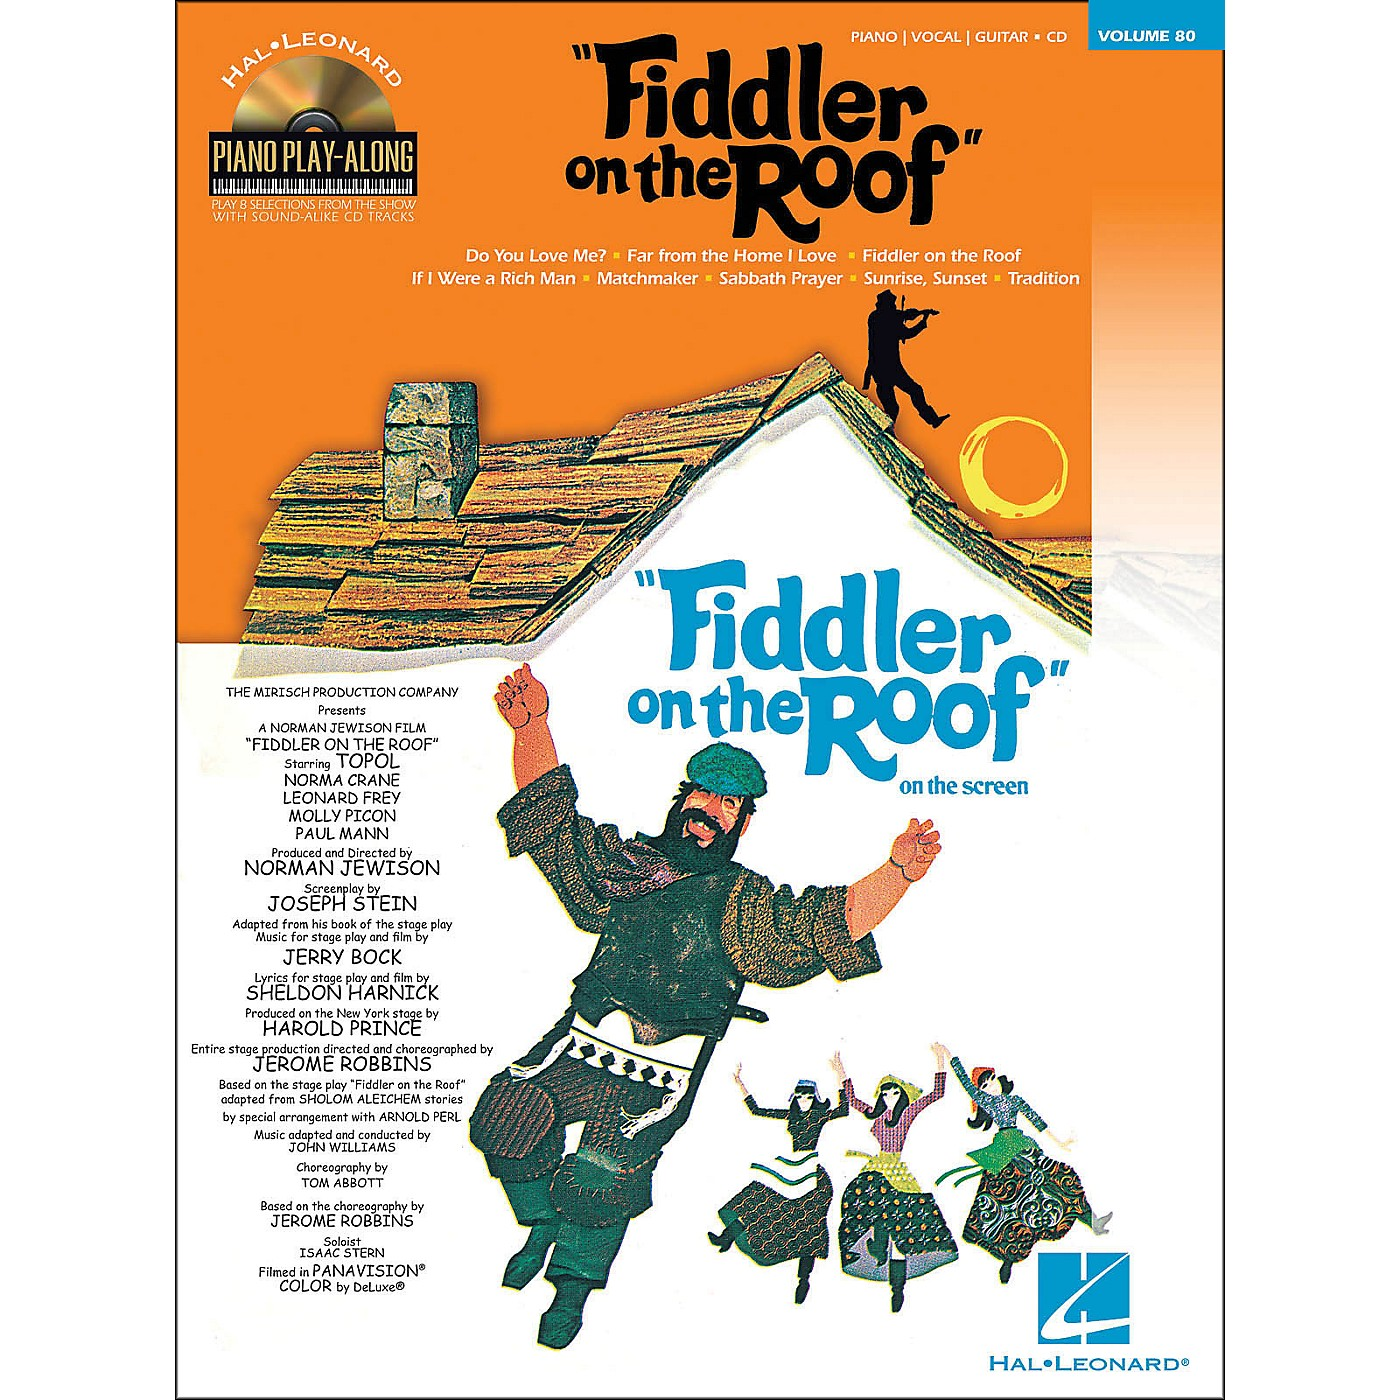 Hal Leonard Fiddler On The Roof - Piano Play-Along Volume 80 (Book/CD) arranged for piano, vocal, and guitar (P/V/G) thumbnail